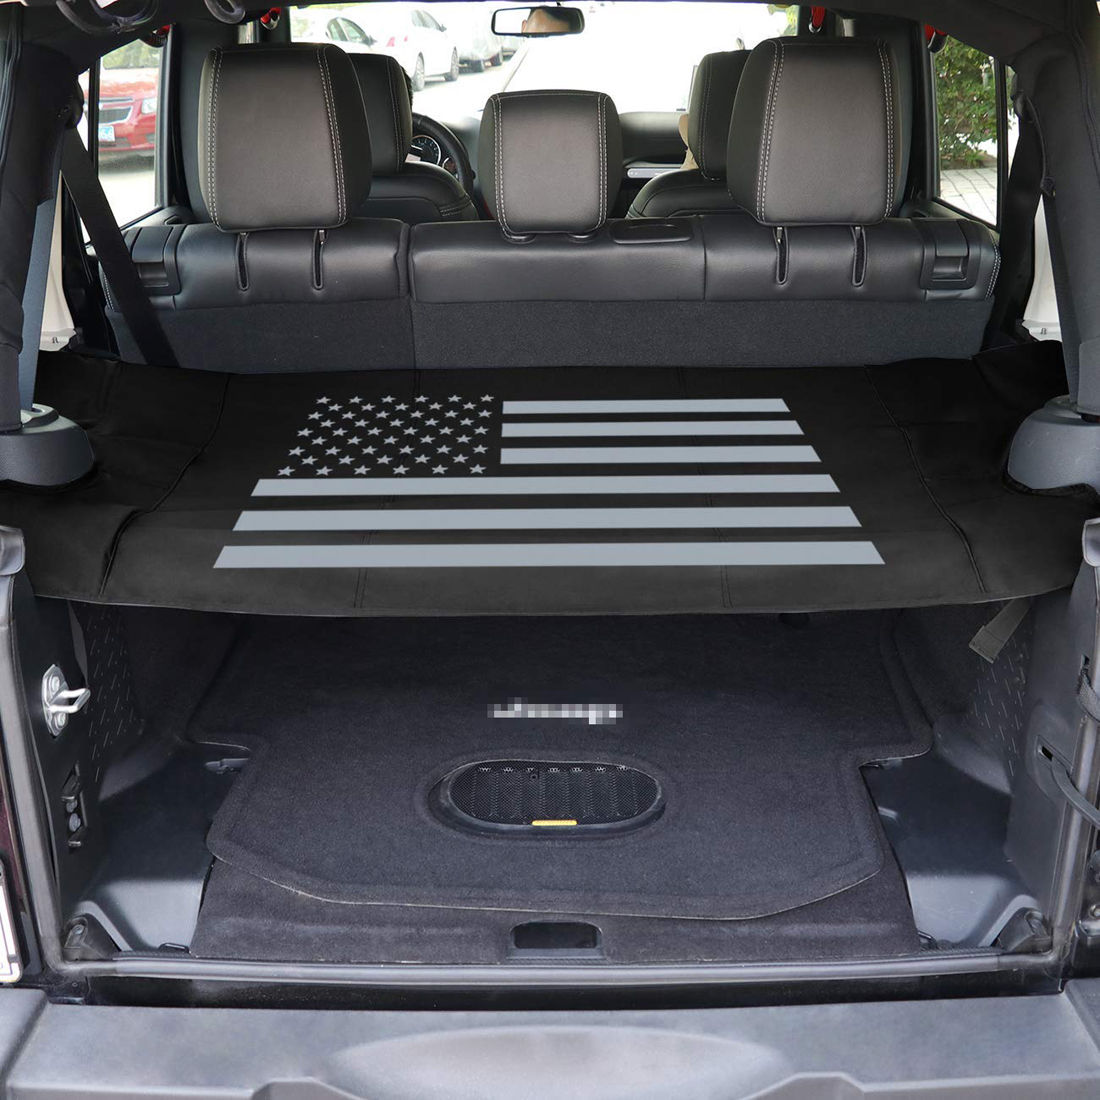 Retractable Rear Trunk Cargo Cover Organizer For Jeep